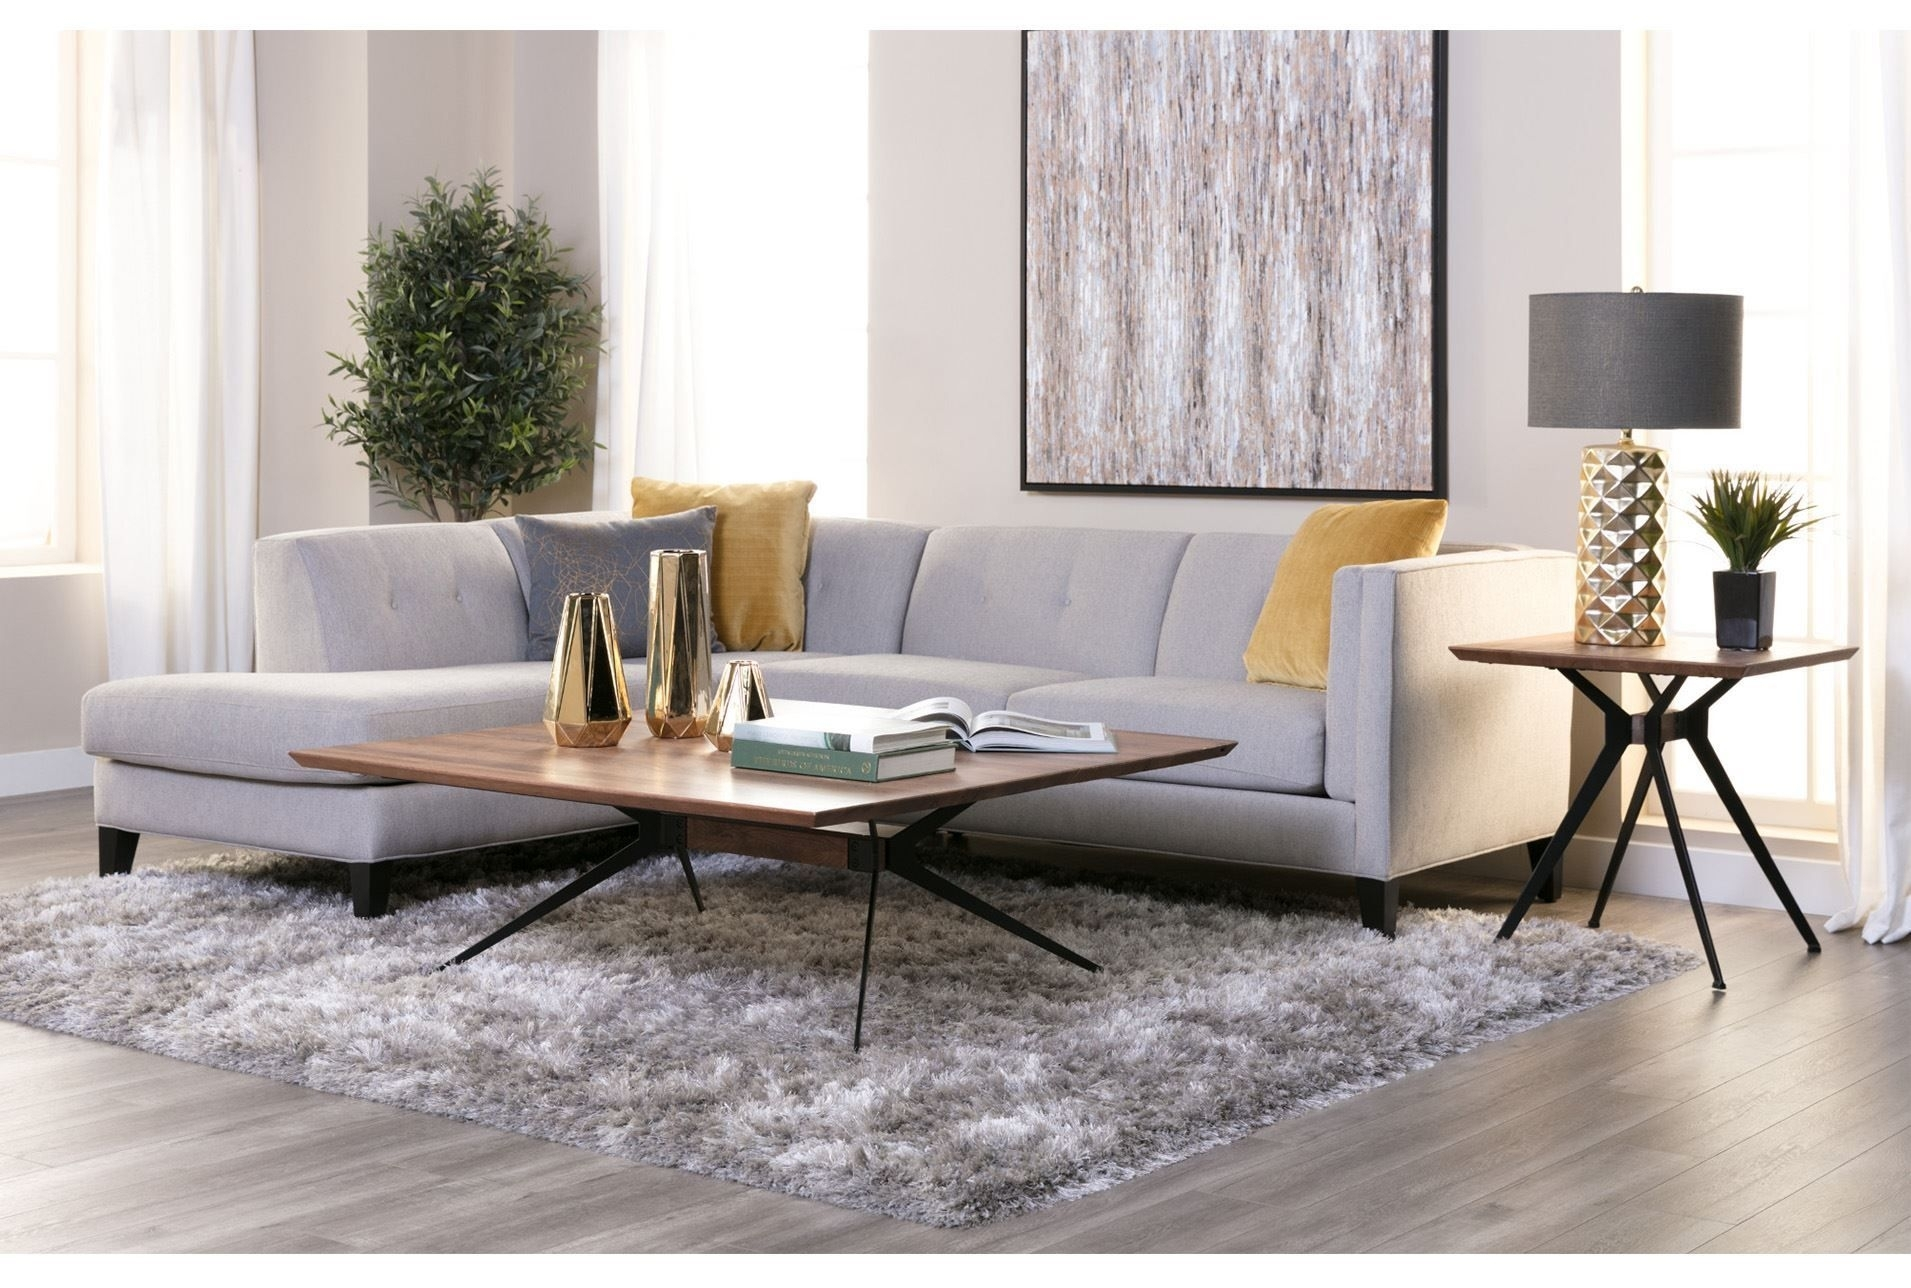 Avery 2 Piece Sectional W/laf Armless Chaise | Home Decor/interior In Avery 2 Piece Sectionals With Raf Armless Chaise (Image 6 of 25)